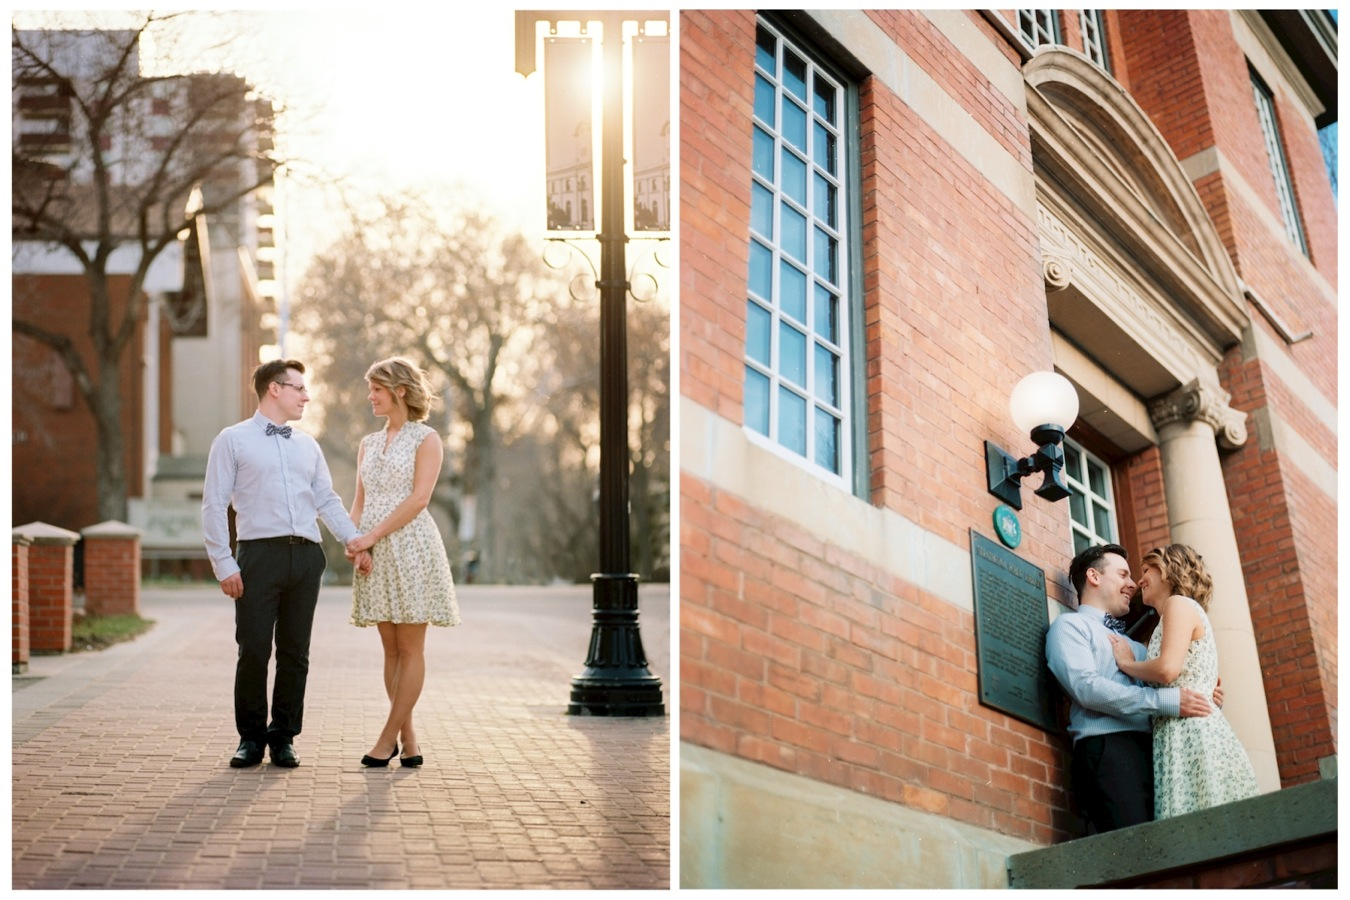 Whyte-Ave-Engagement-Session-06.jpeg